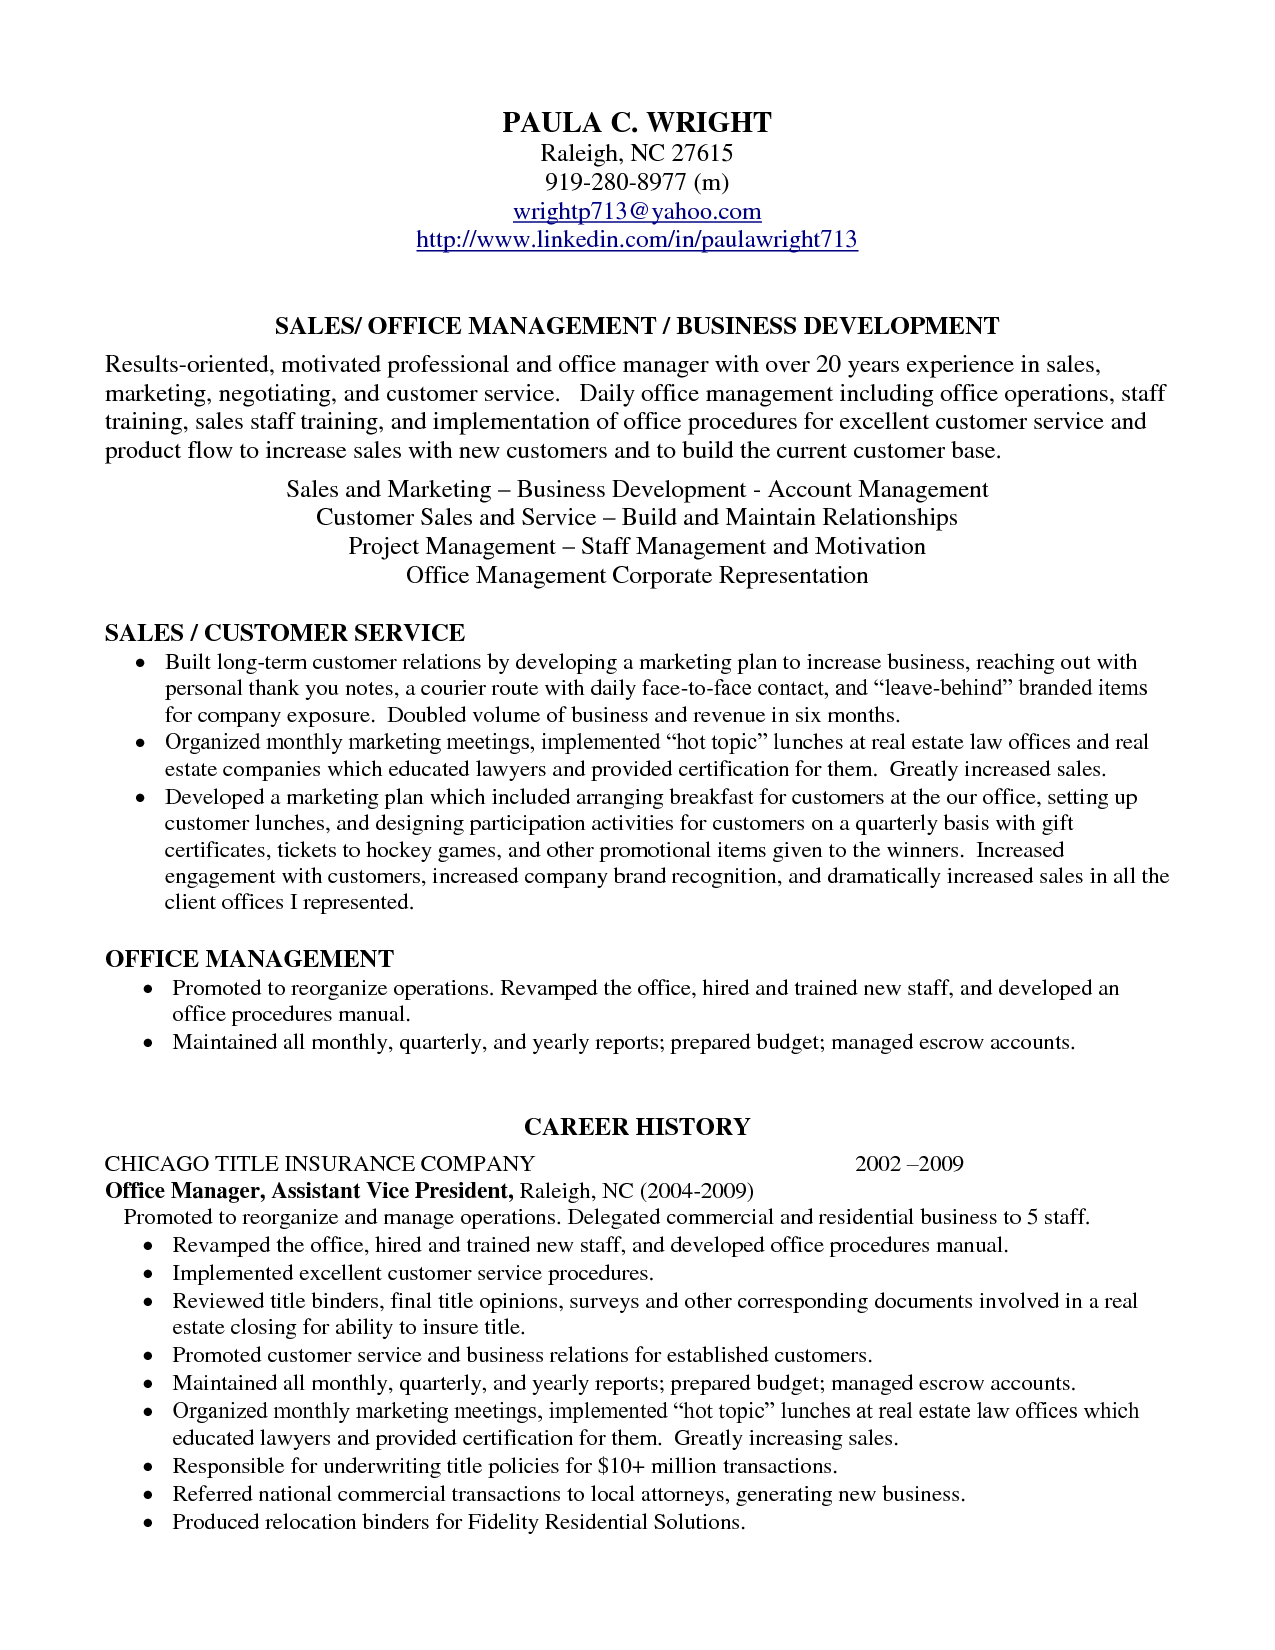 Business Management Resume Professional Profile Resume Examplesresume Professional Profile